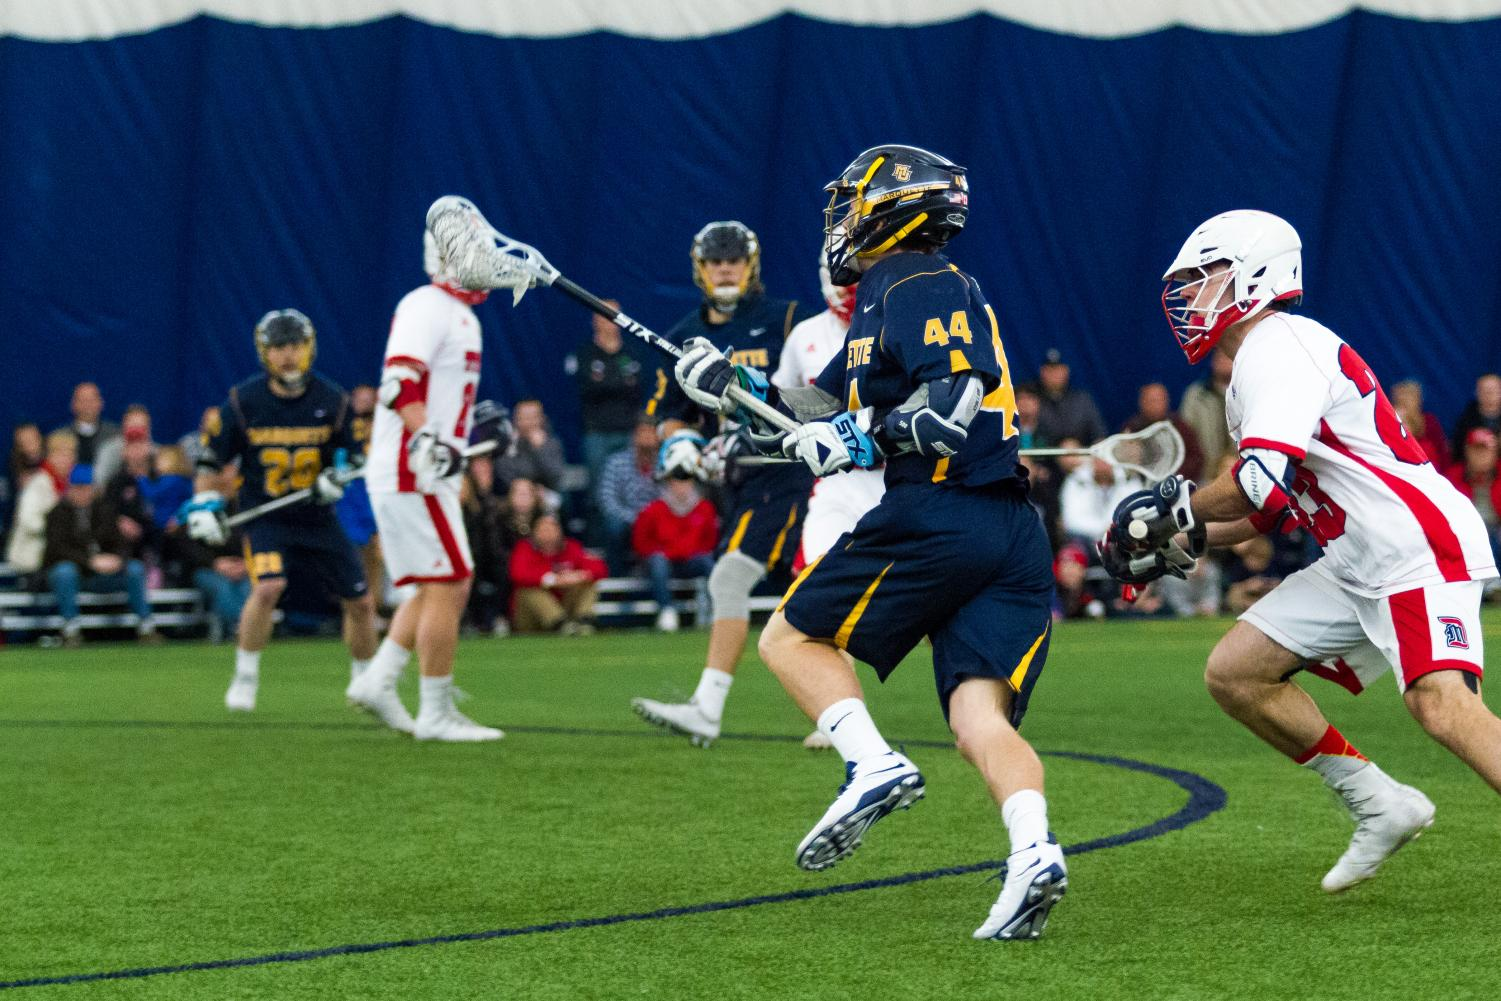 Tanner Thomson scored six goals in Marquette's victory against St. John's last season. He will redshirt the 2018 season.